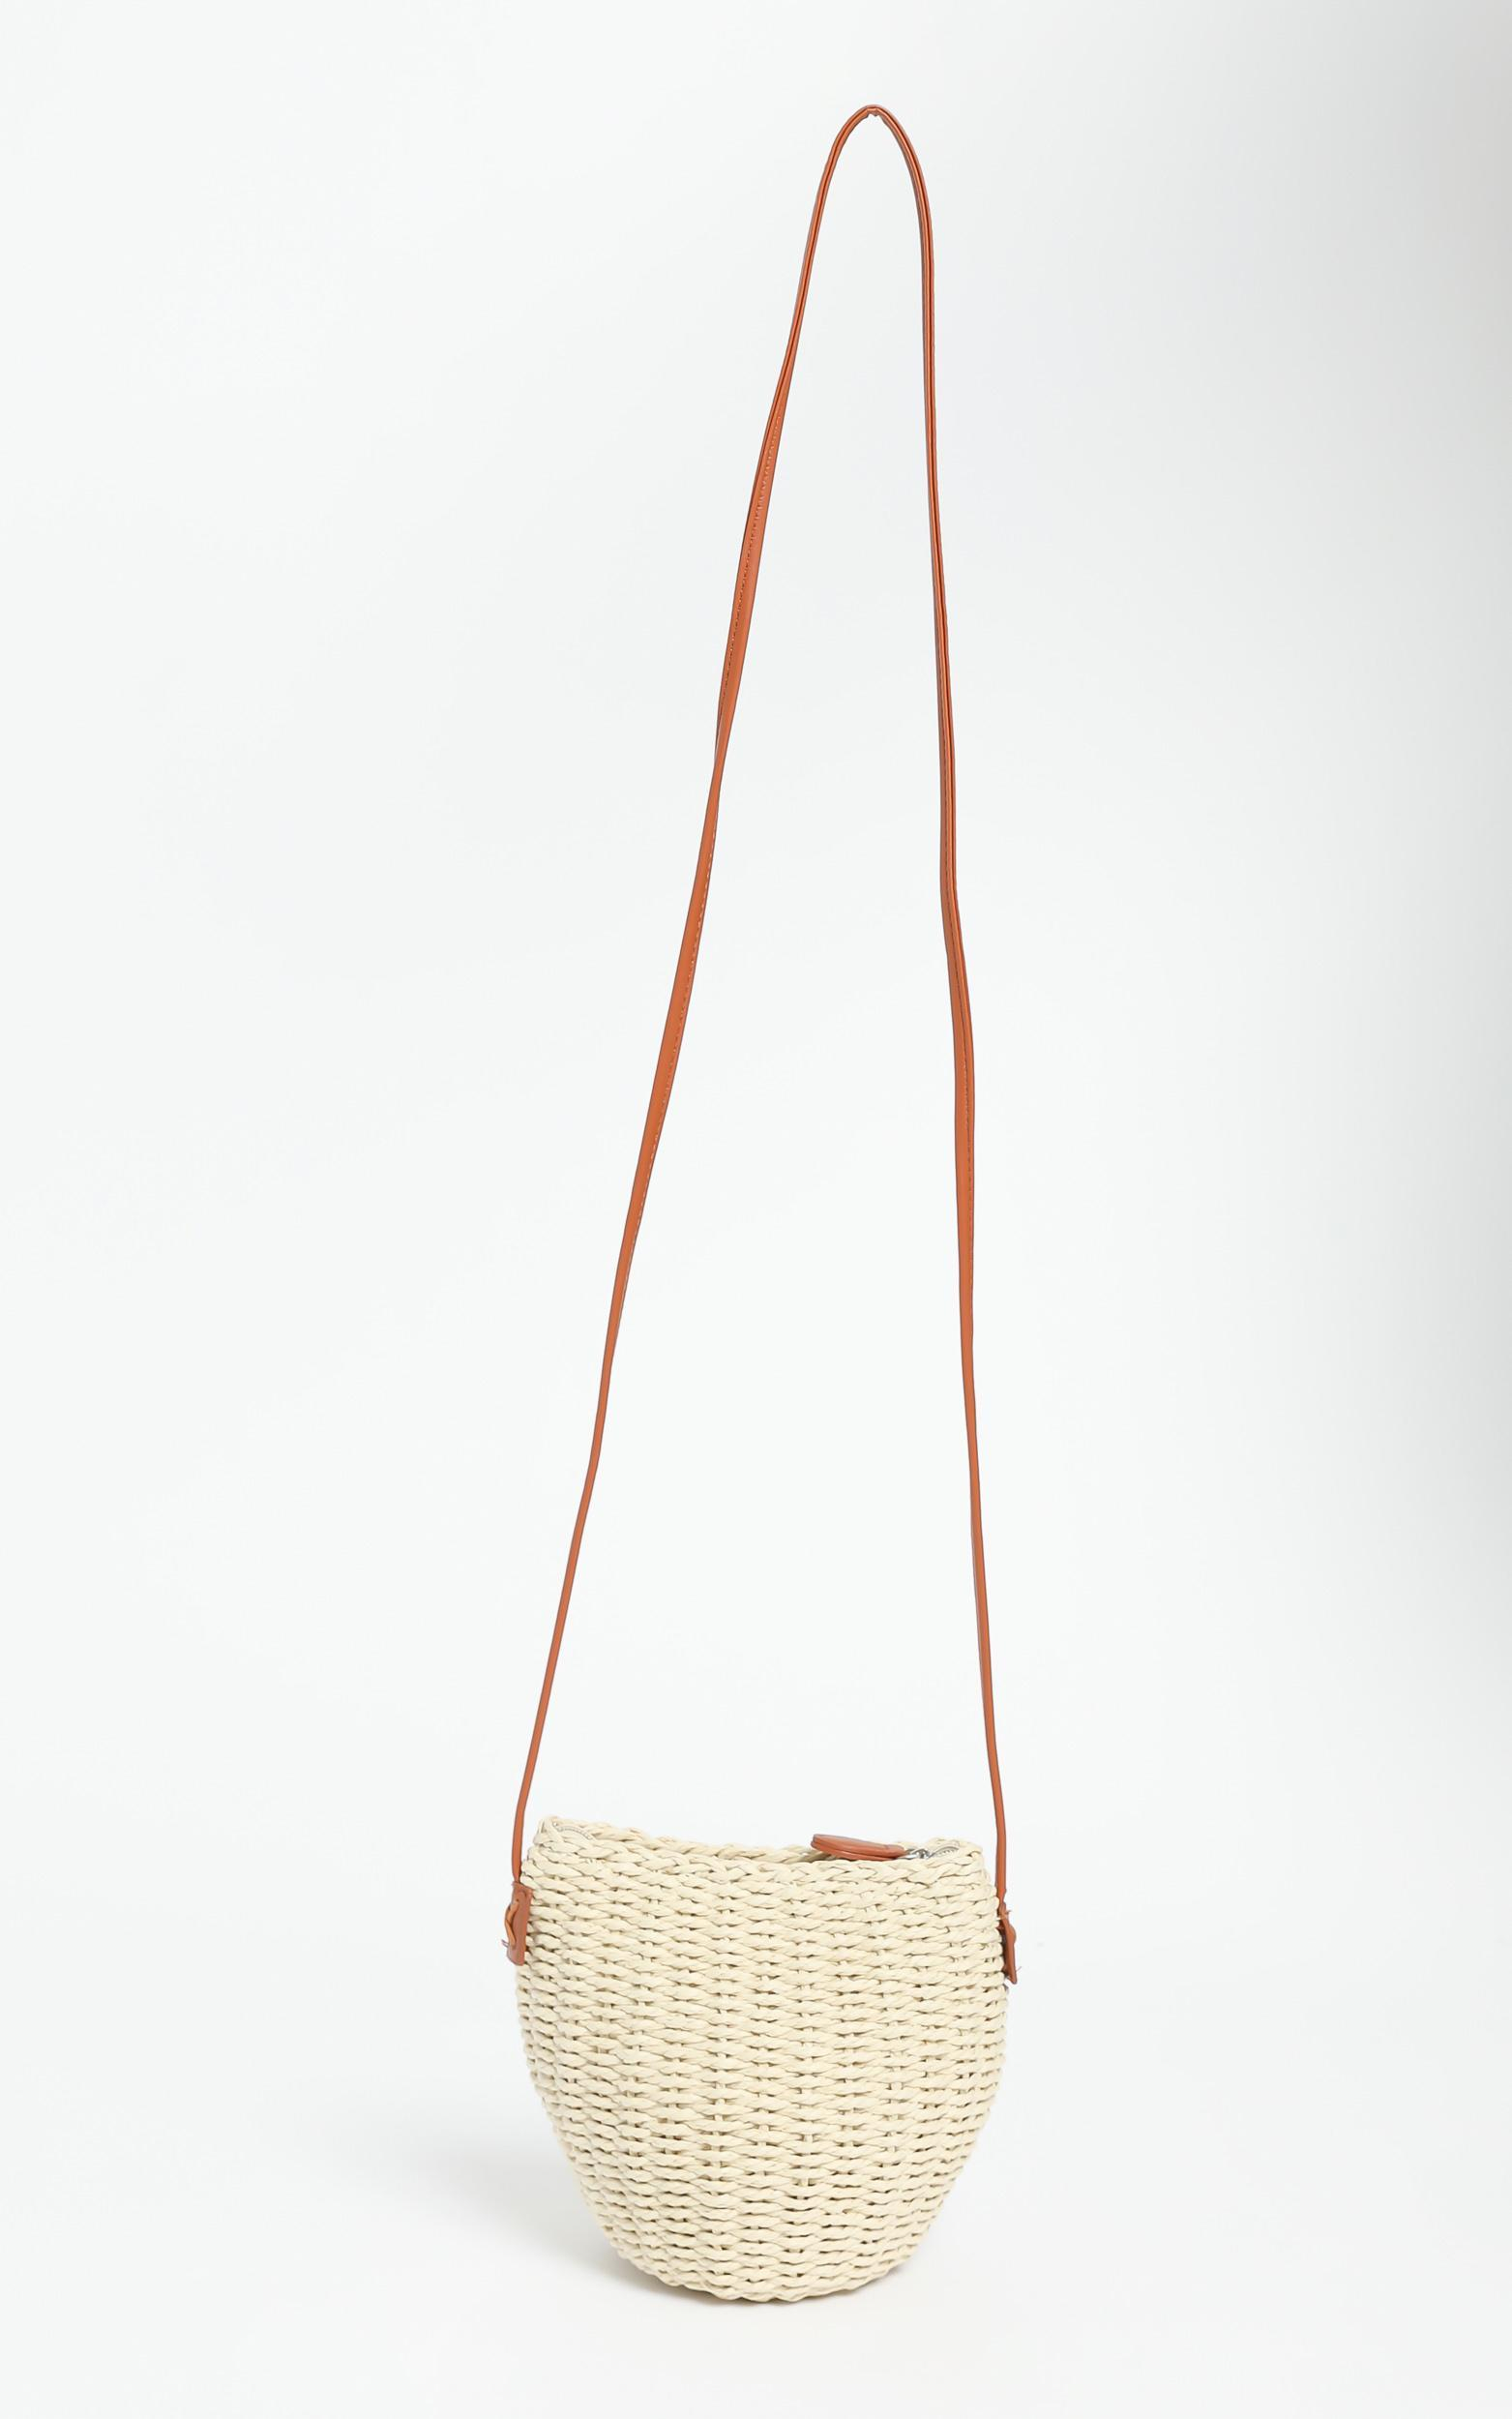 Valente Bag in White Straw, , hi-res image number null